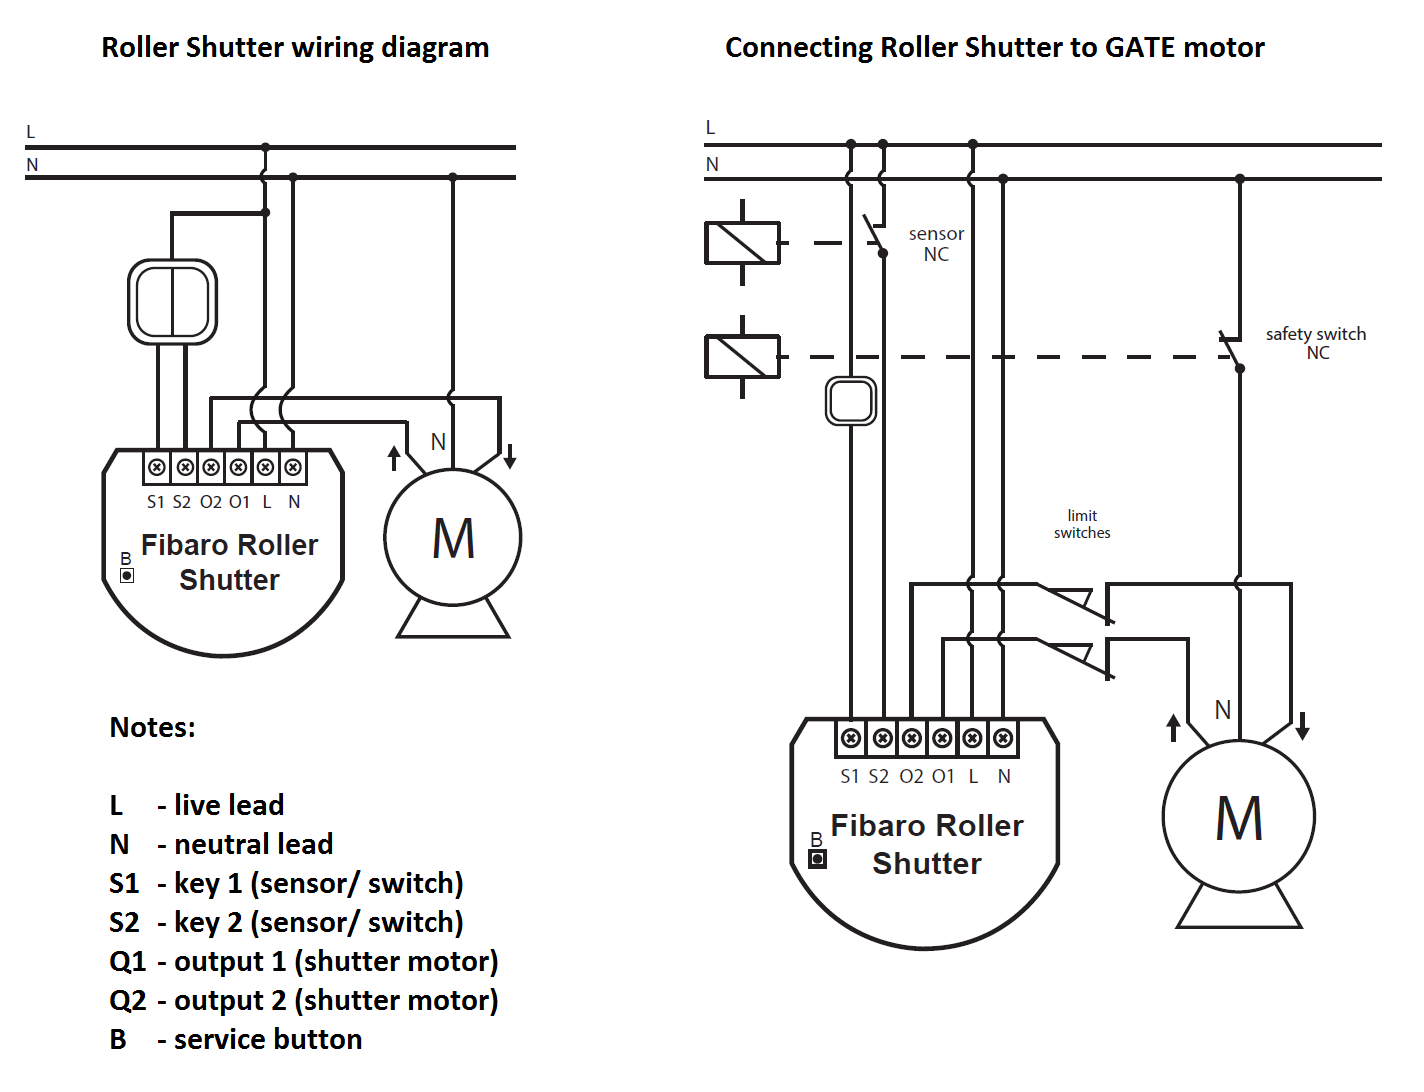 shutter motor electrical diagram shutter image shutter motor electrical diagram shutter image wiring diagram